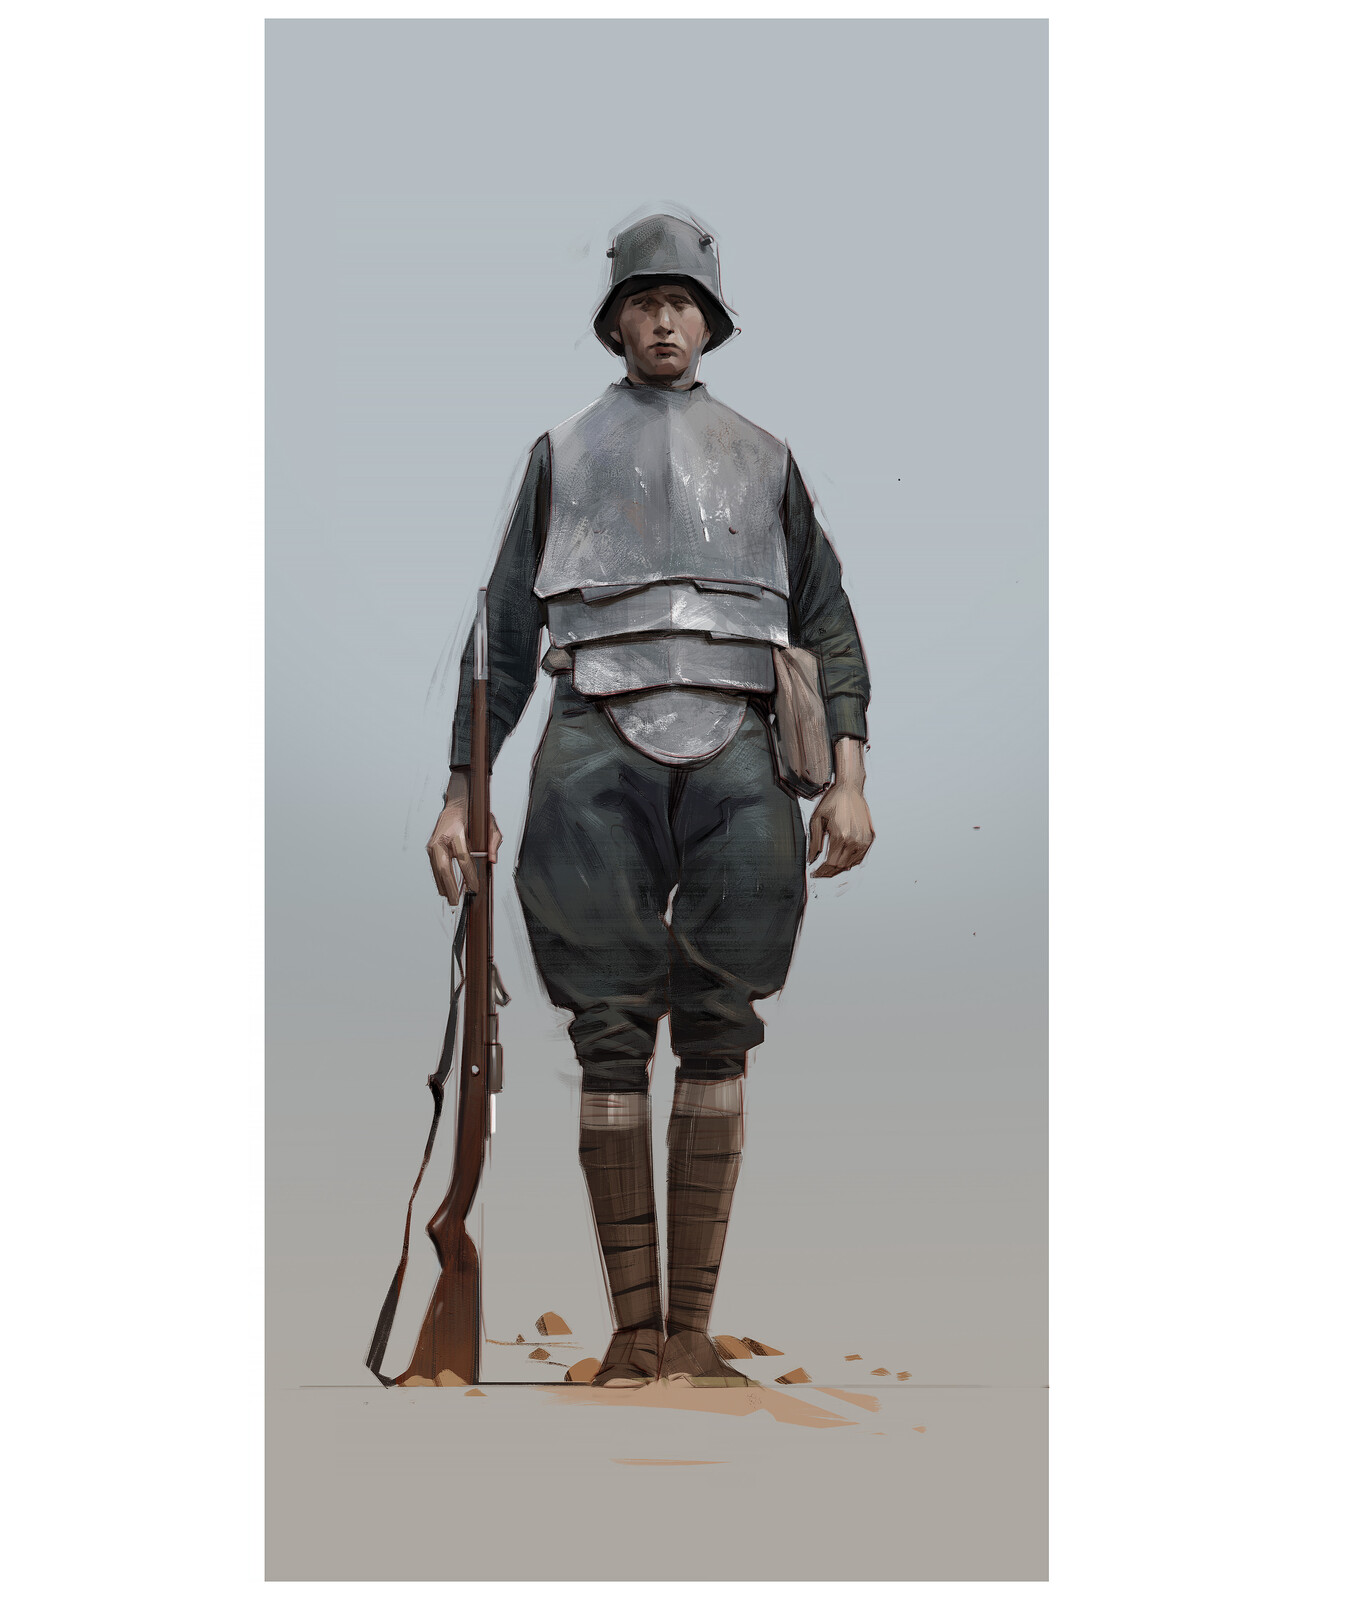 Found the gear on these WW1 trench troops really interesting, a photo study.